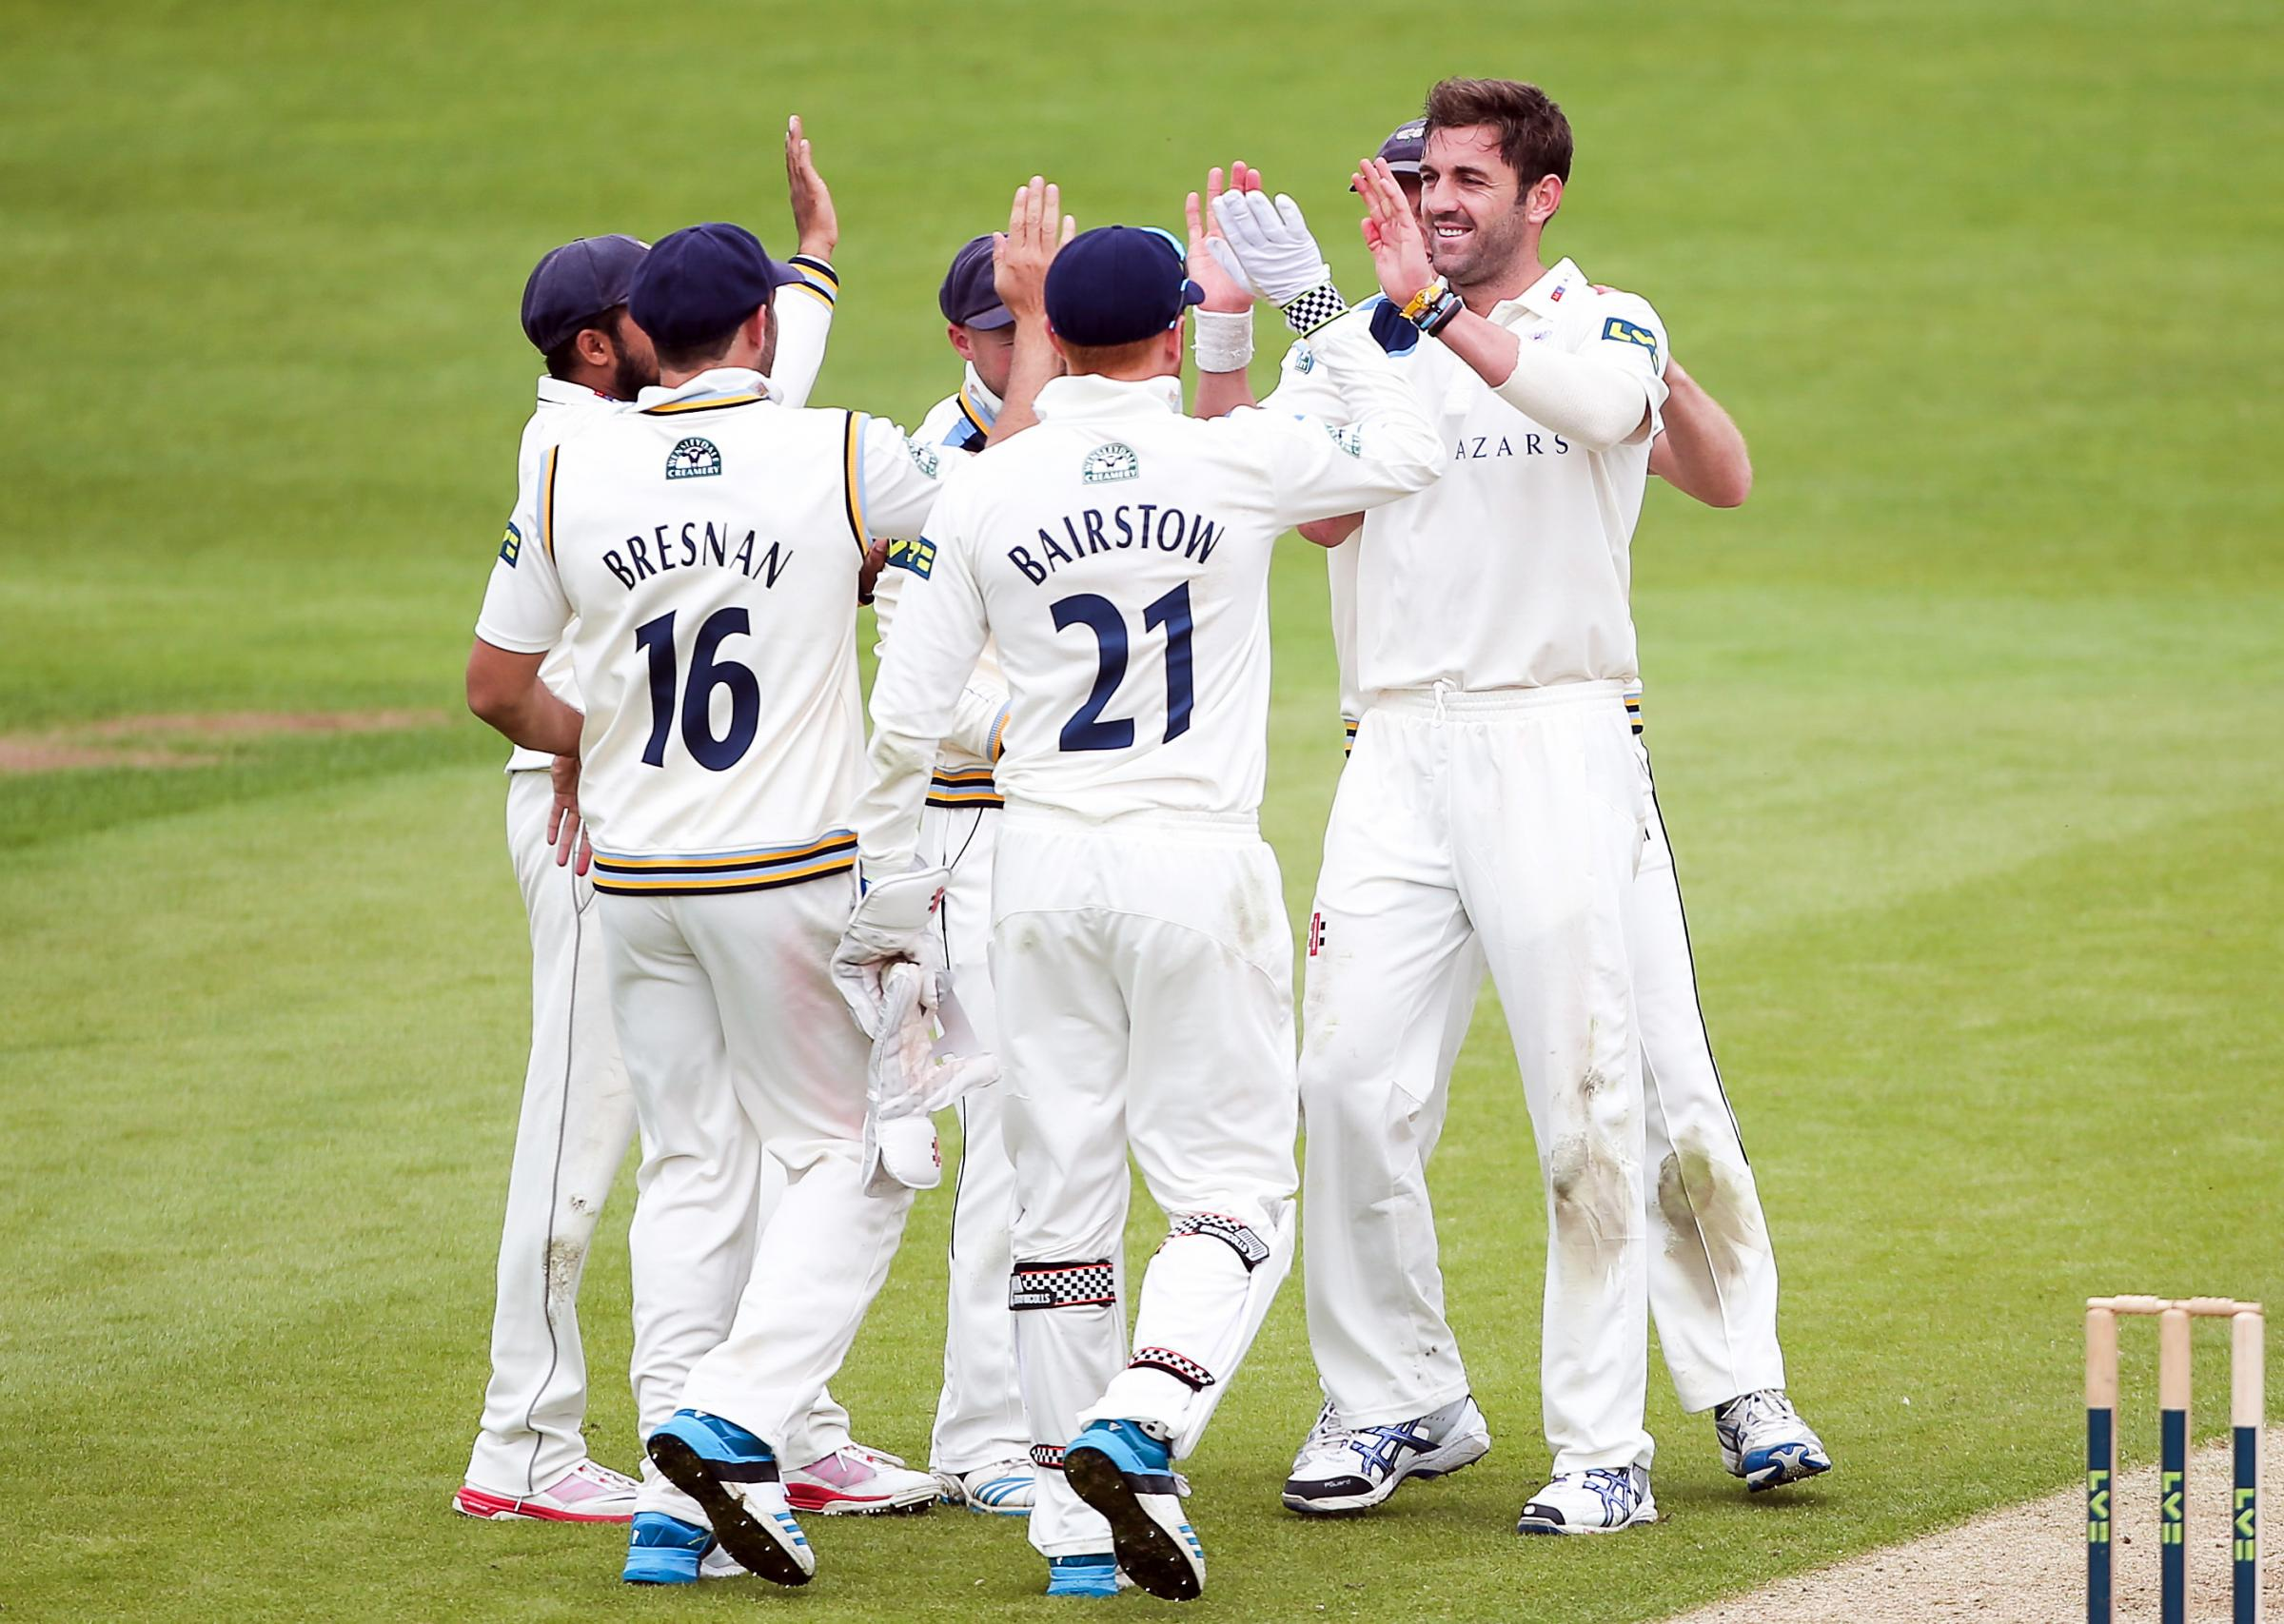 Yorkshire's Liam Plunkett is back in the England Test squadPicture: Alex Whitehead/swpix.com